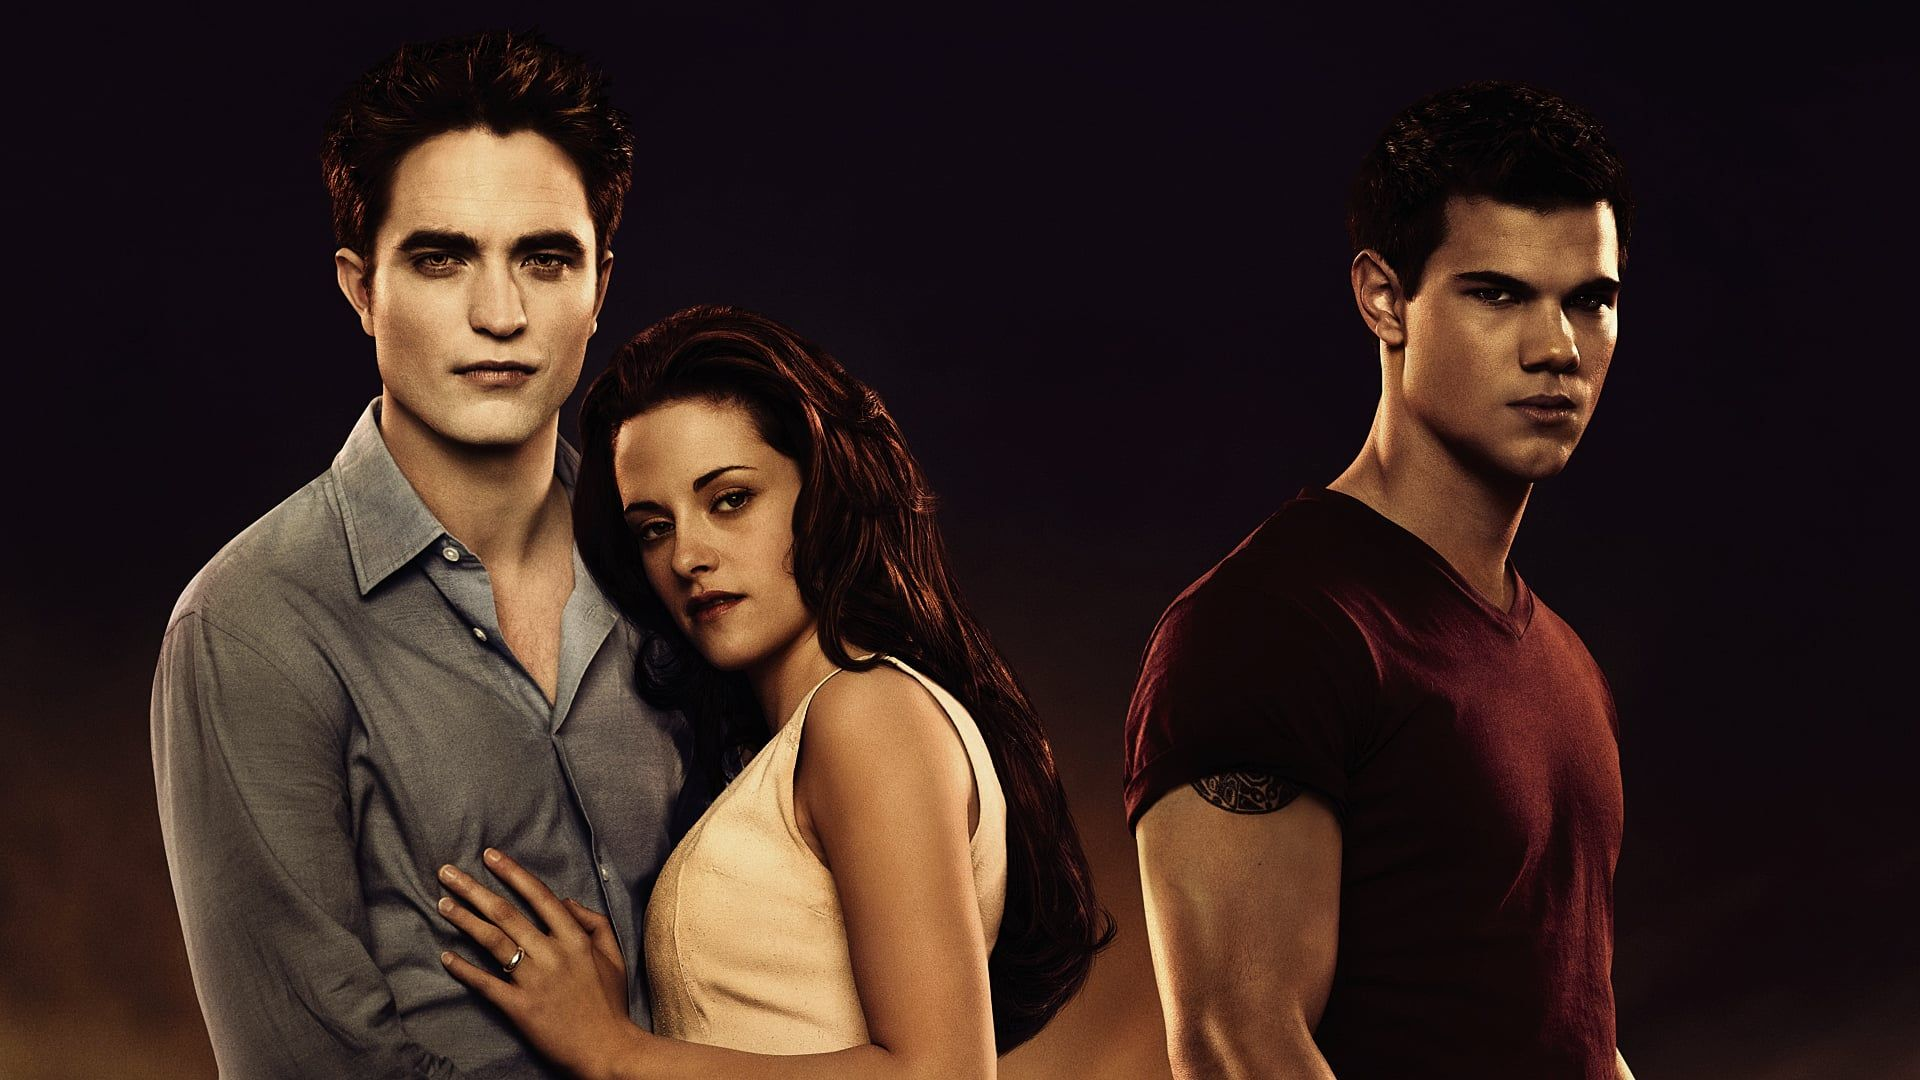 The Twilight Saga Breaking Dawn Parte 1 2011 Streaming Ita Cb01 Film Completo Italiano Altadefinizione Isabella Sw Twilight Saga Breaking Dawn Edward Cullen